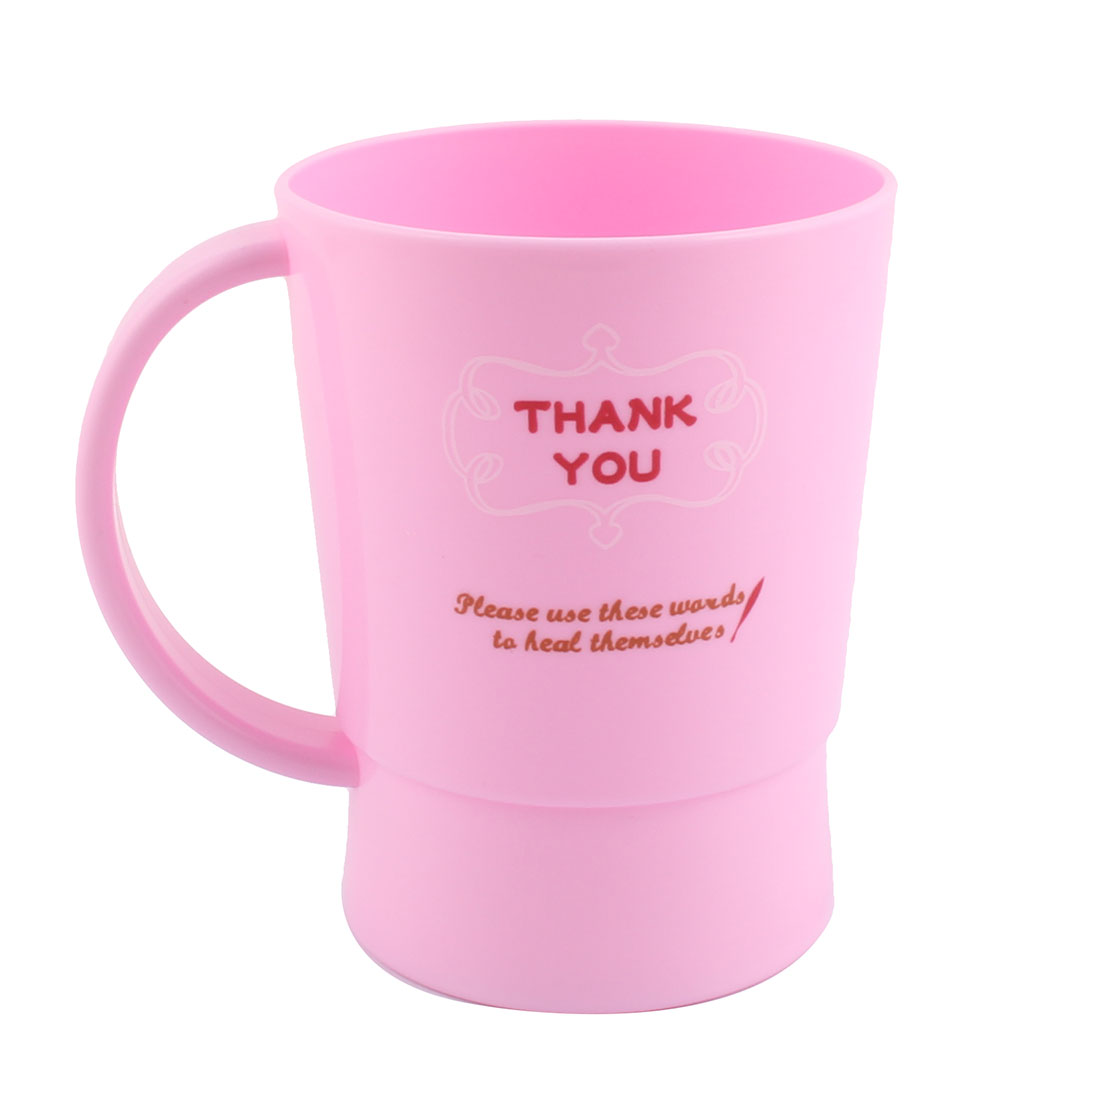 Household Bathroom Plastic Water Glass Toothbrush Toothpaste Gargle Cup Pink